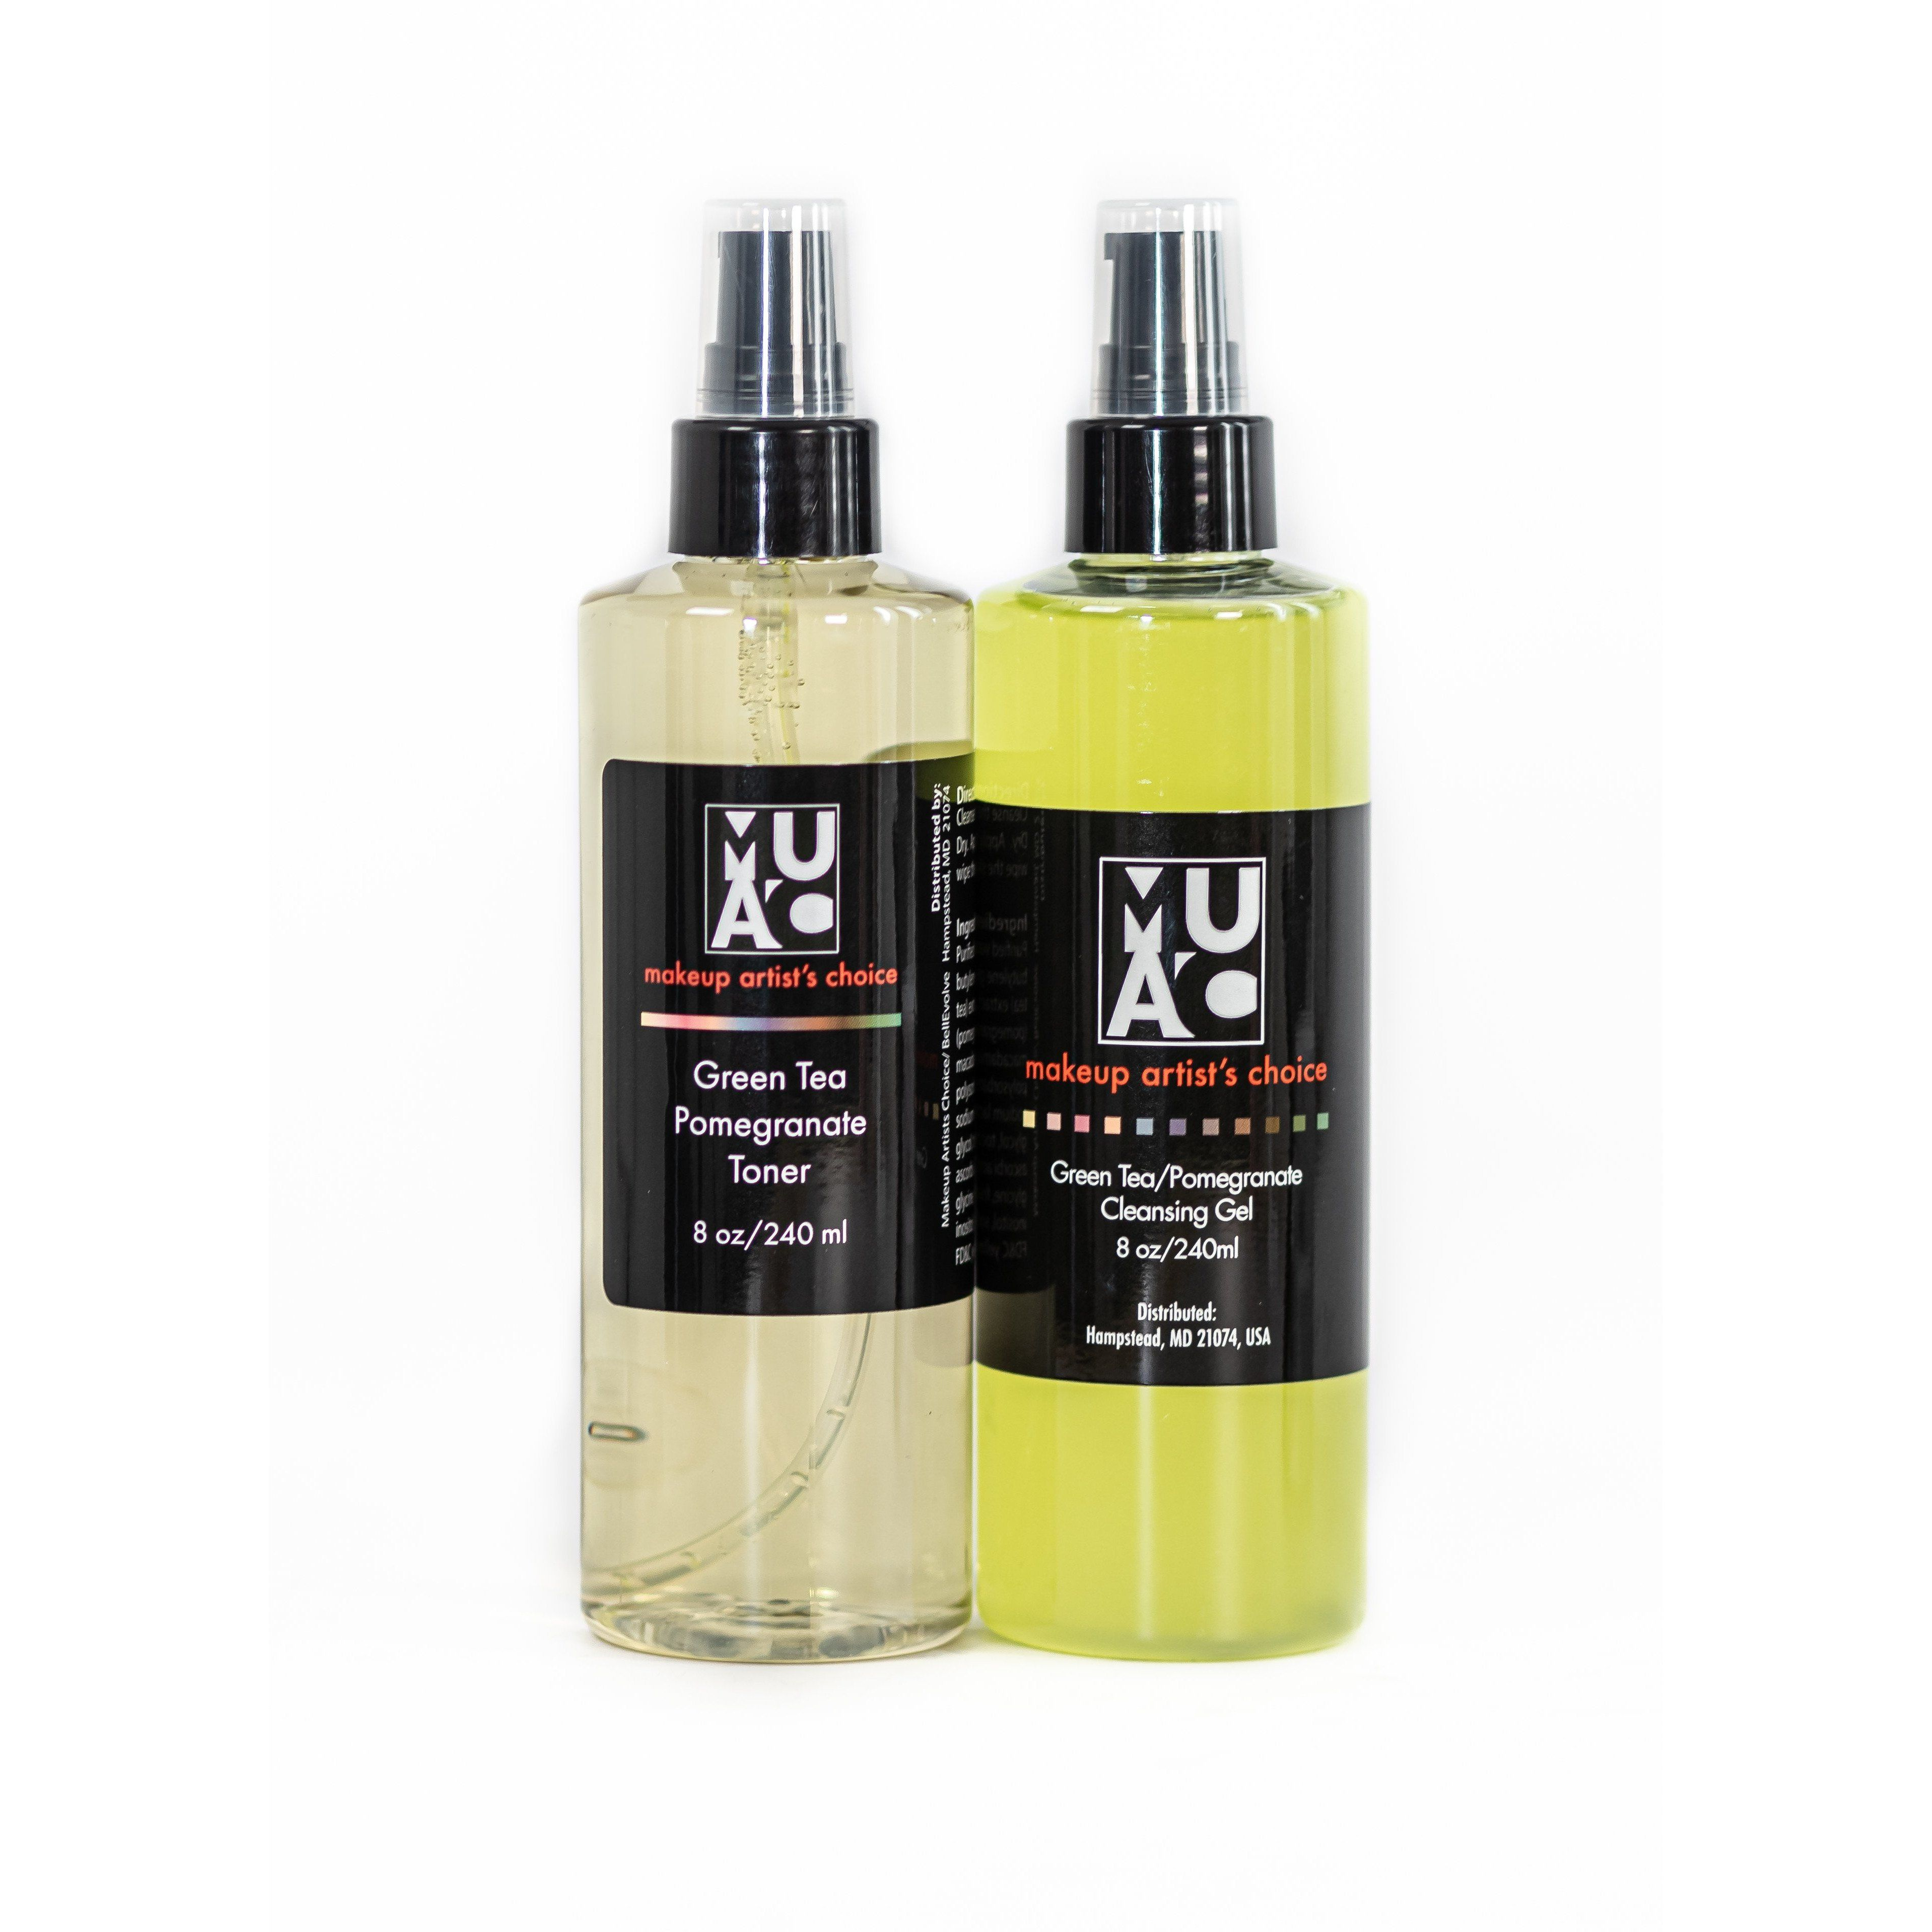 Photo of Green Tea/Pomegranate Cleanser or Toner or Both – No / 8 oz pump bottle / No